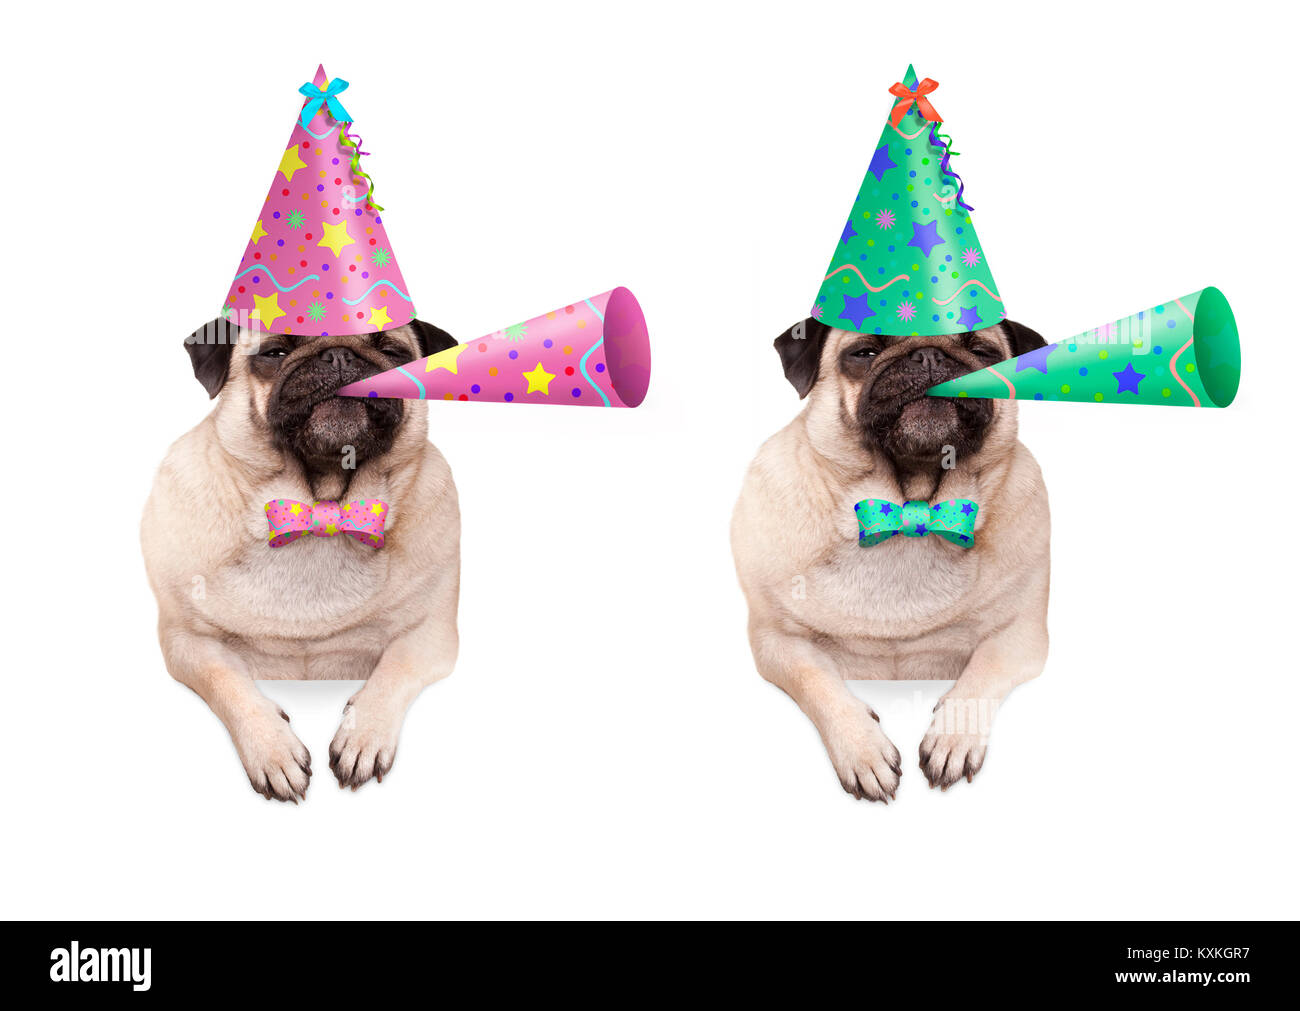 adorable pug puppy dog hanging with paws on blank banner, wearing colorful birthday party hat and blowing horn, - Stock Image